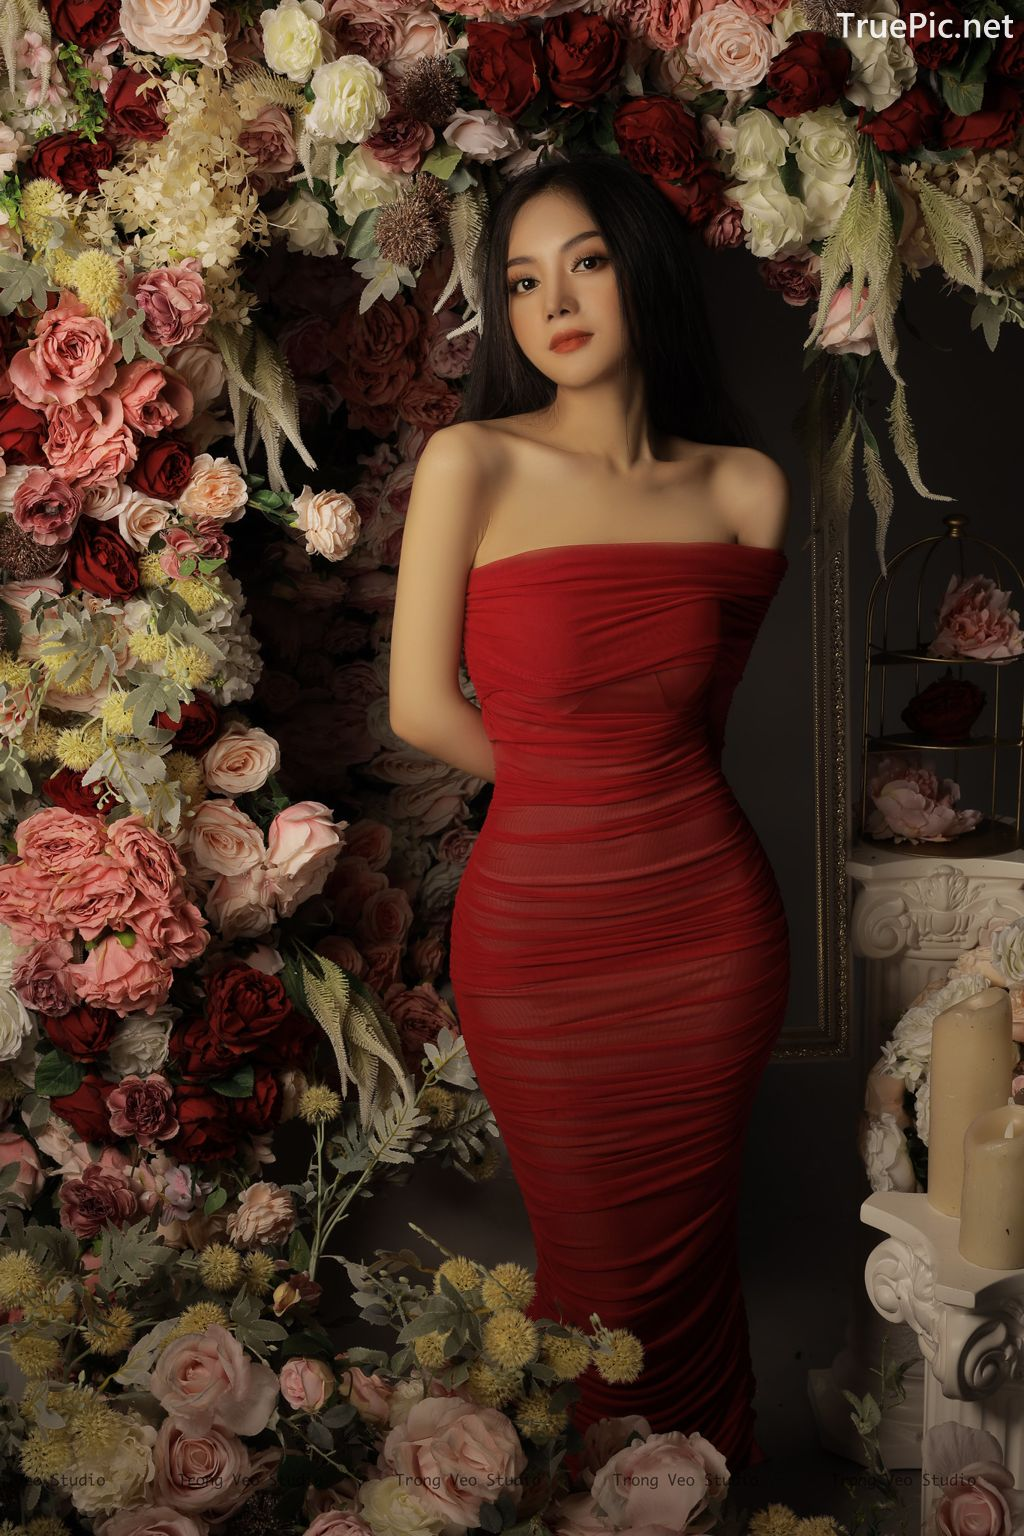 Image Vietnamese Model - Beautiful Girl and Flowers - TruePic.net - Picture-3